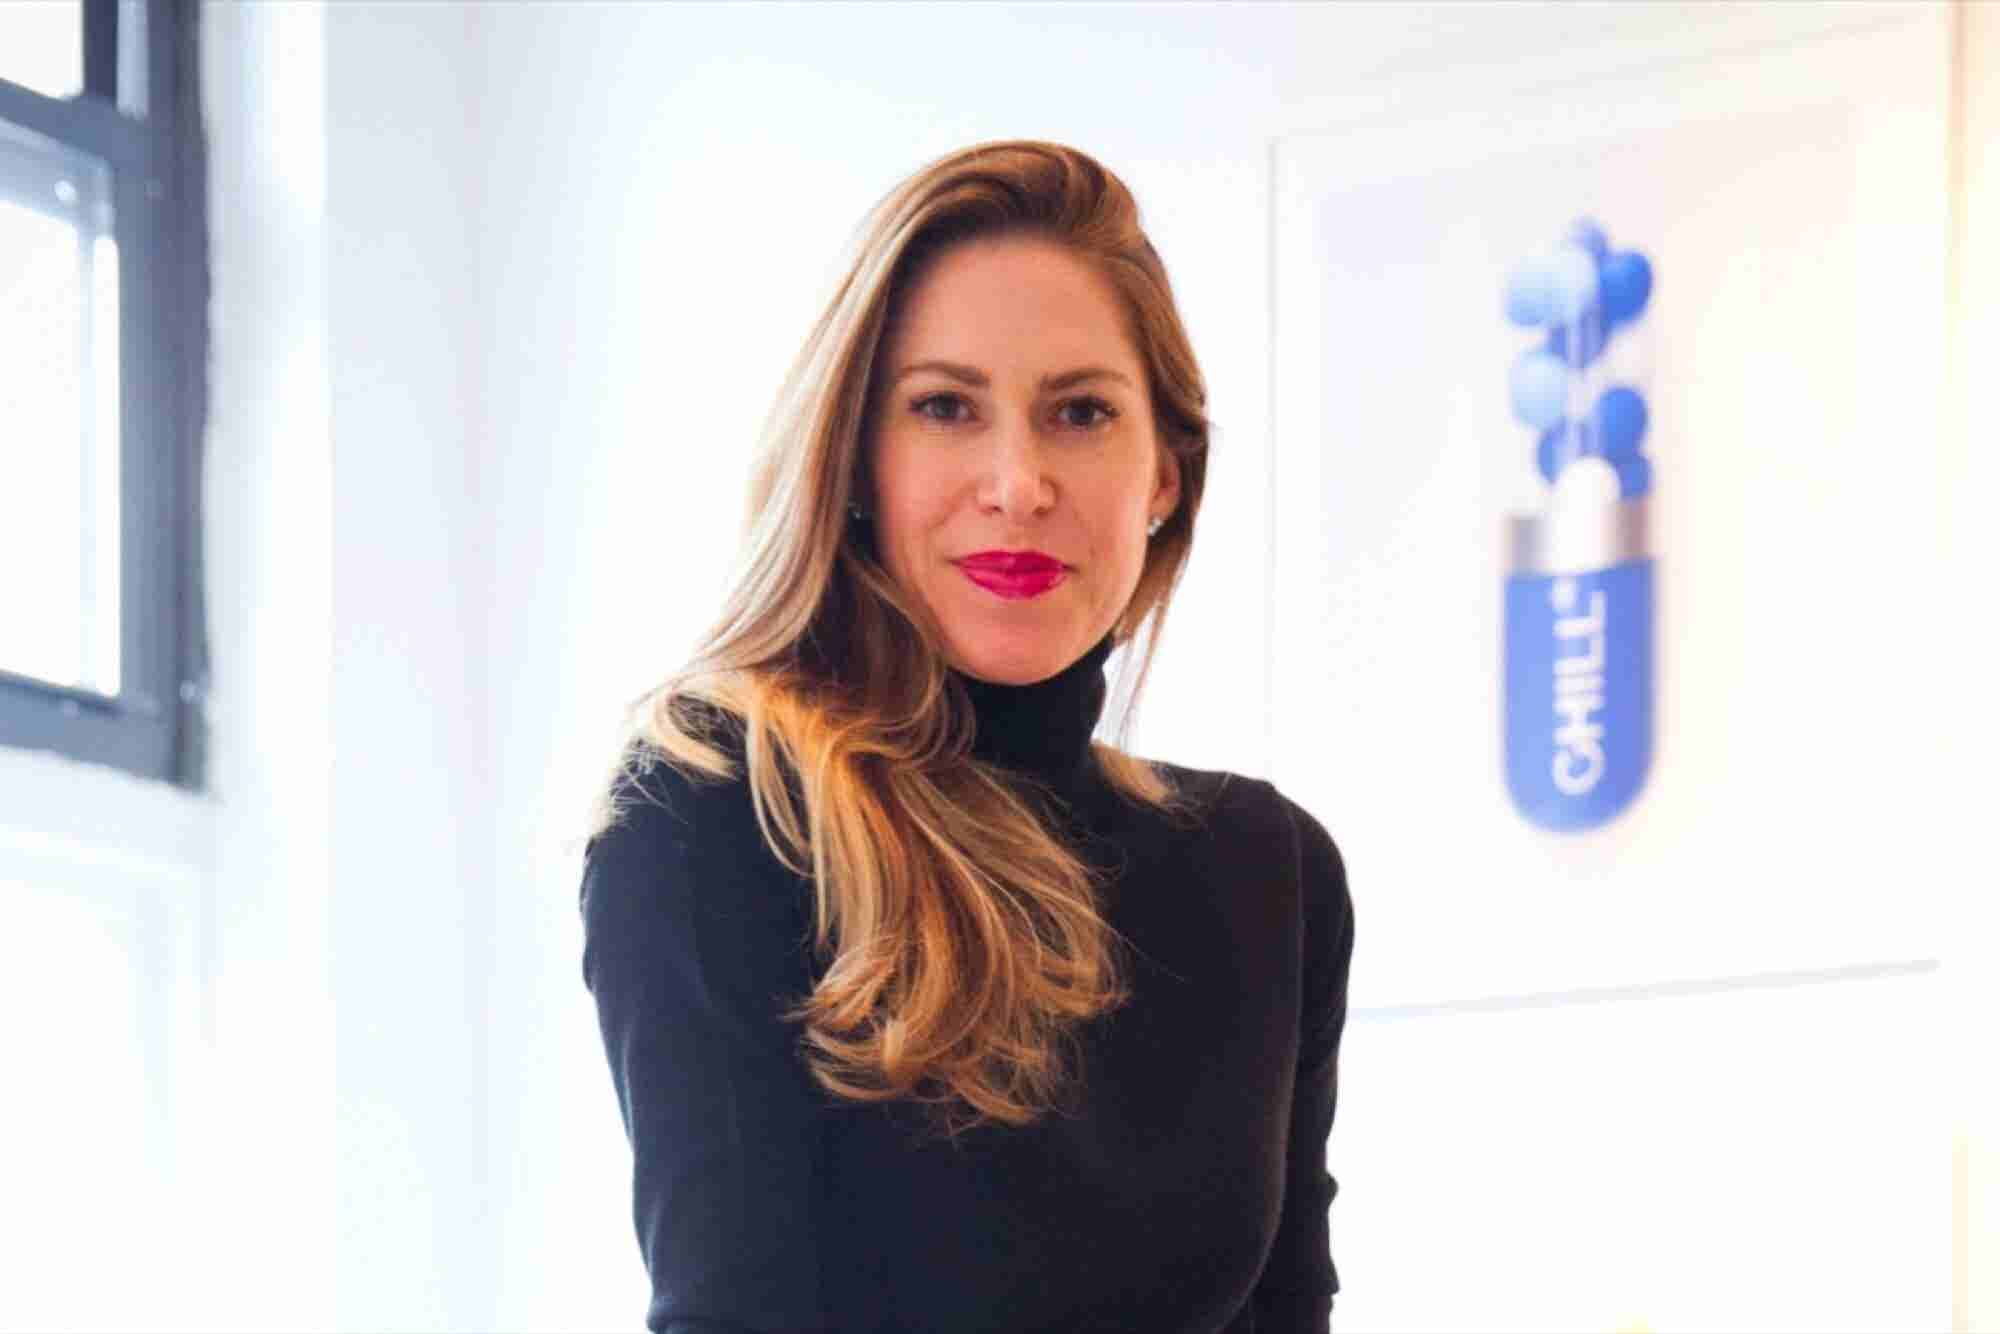 Adapt to the Way People Shop, Not How You Want Them to Shop, According to this Founder